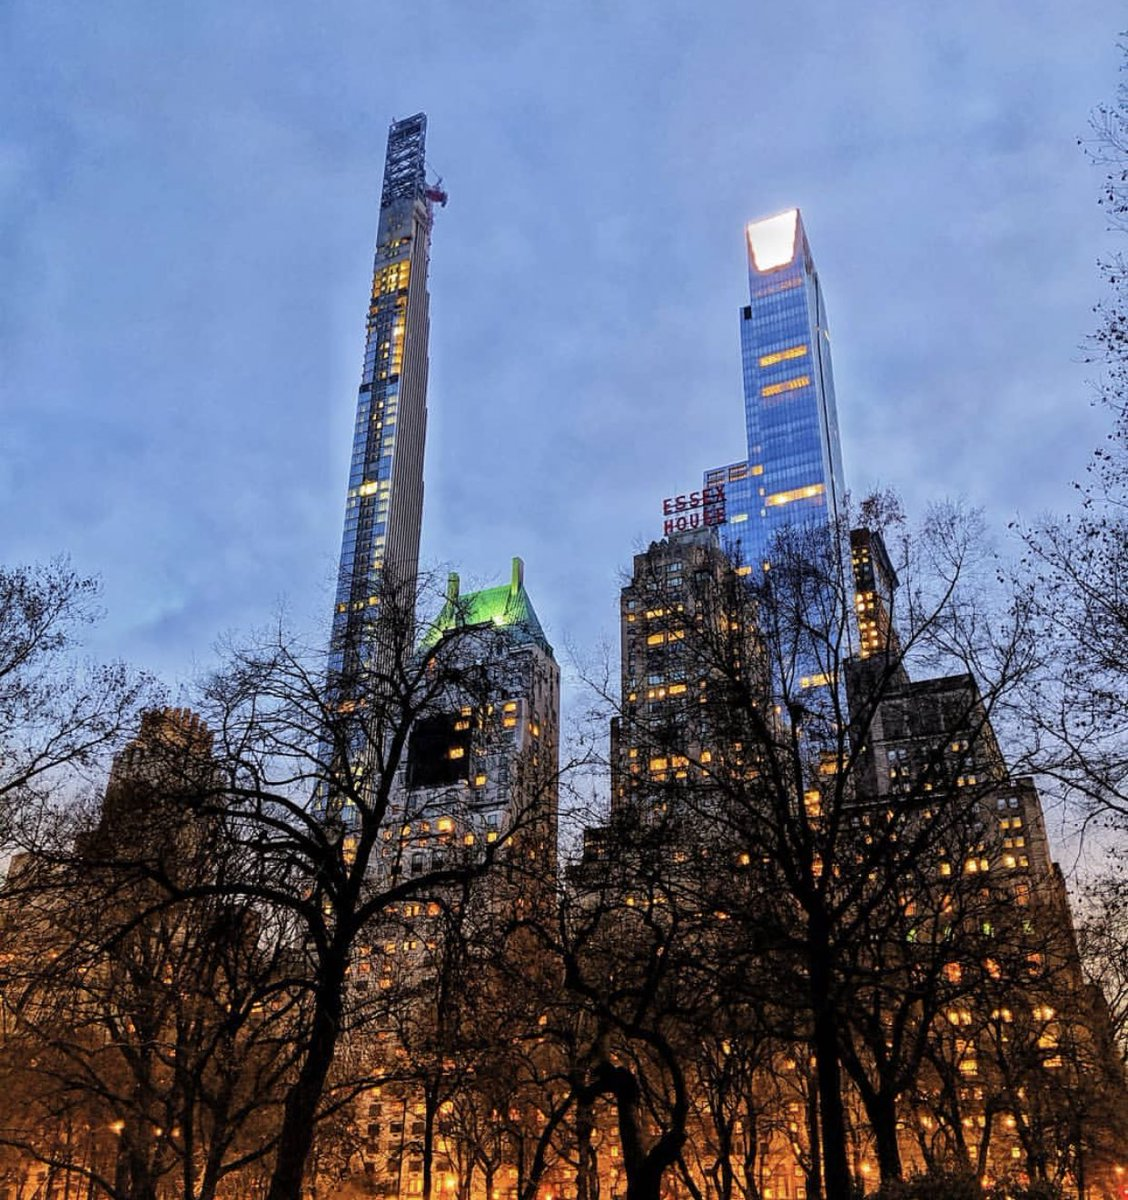 An evening stroll like no other, just steps away in @CentralParkNYC   Photo Credit: @skyalignphoto  #ParkHyattNY #LuxuryIsPersonal #CentralPark #NYC #WeekendPlans<br>http://pic.twitter.com/G9DC9j8c5x